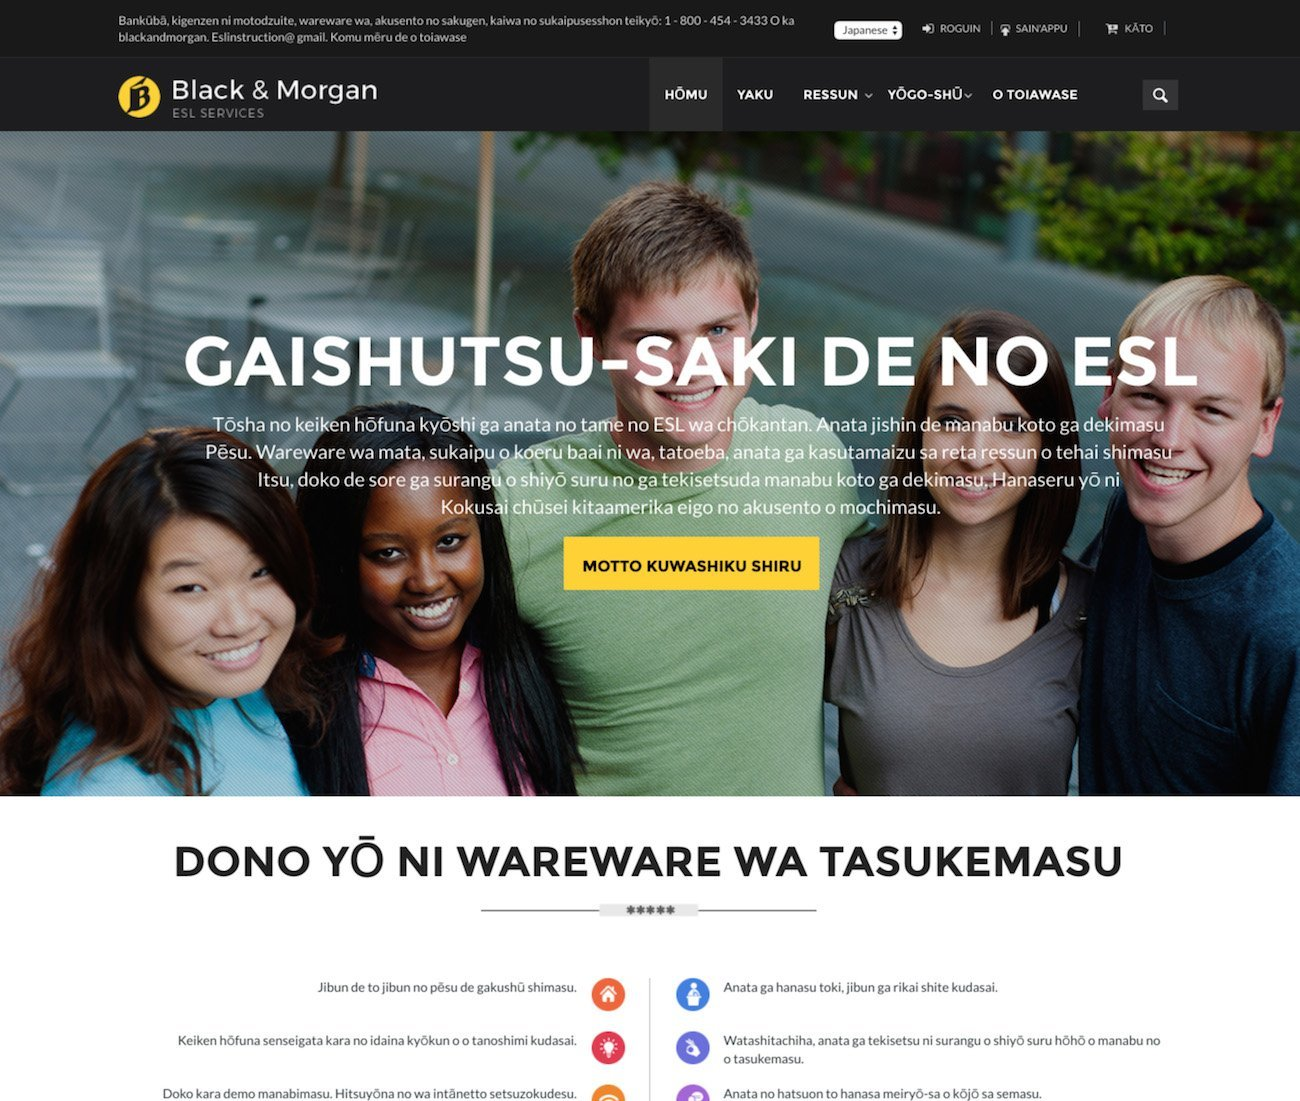 3.multi-lingual-web-design